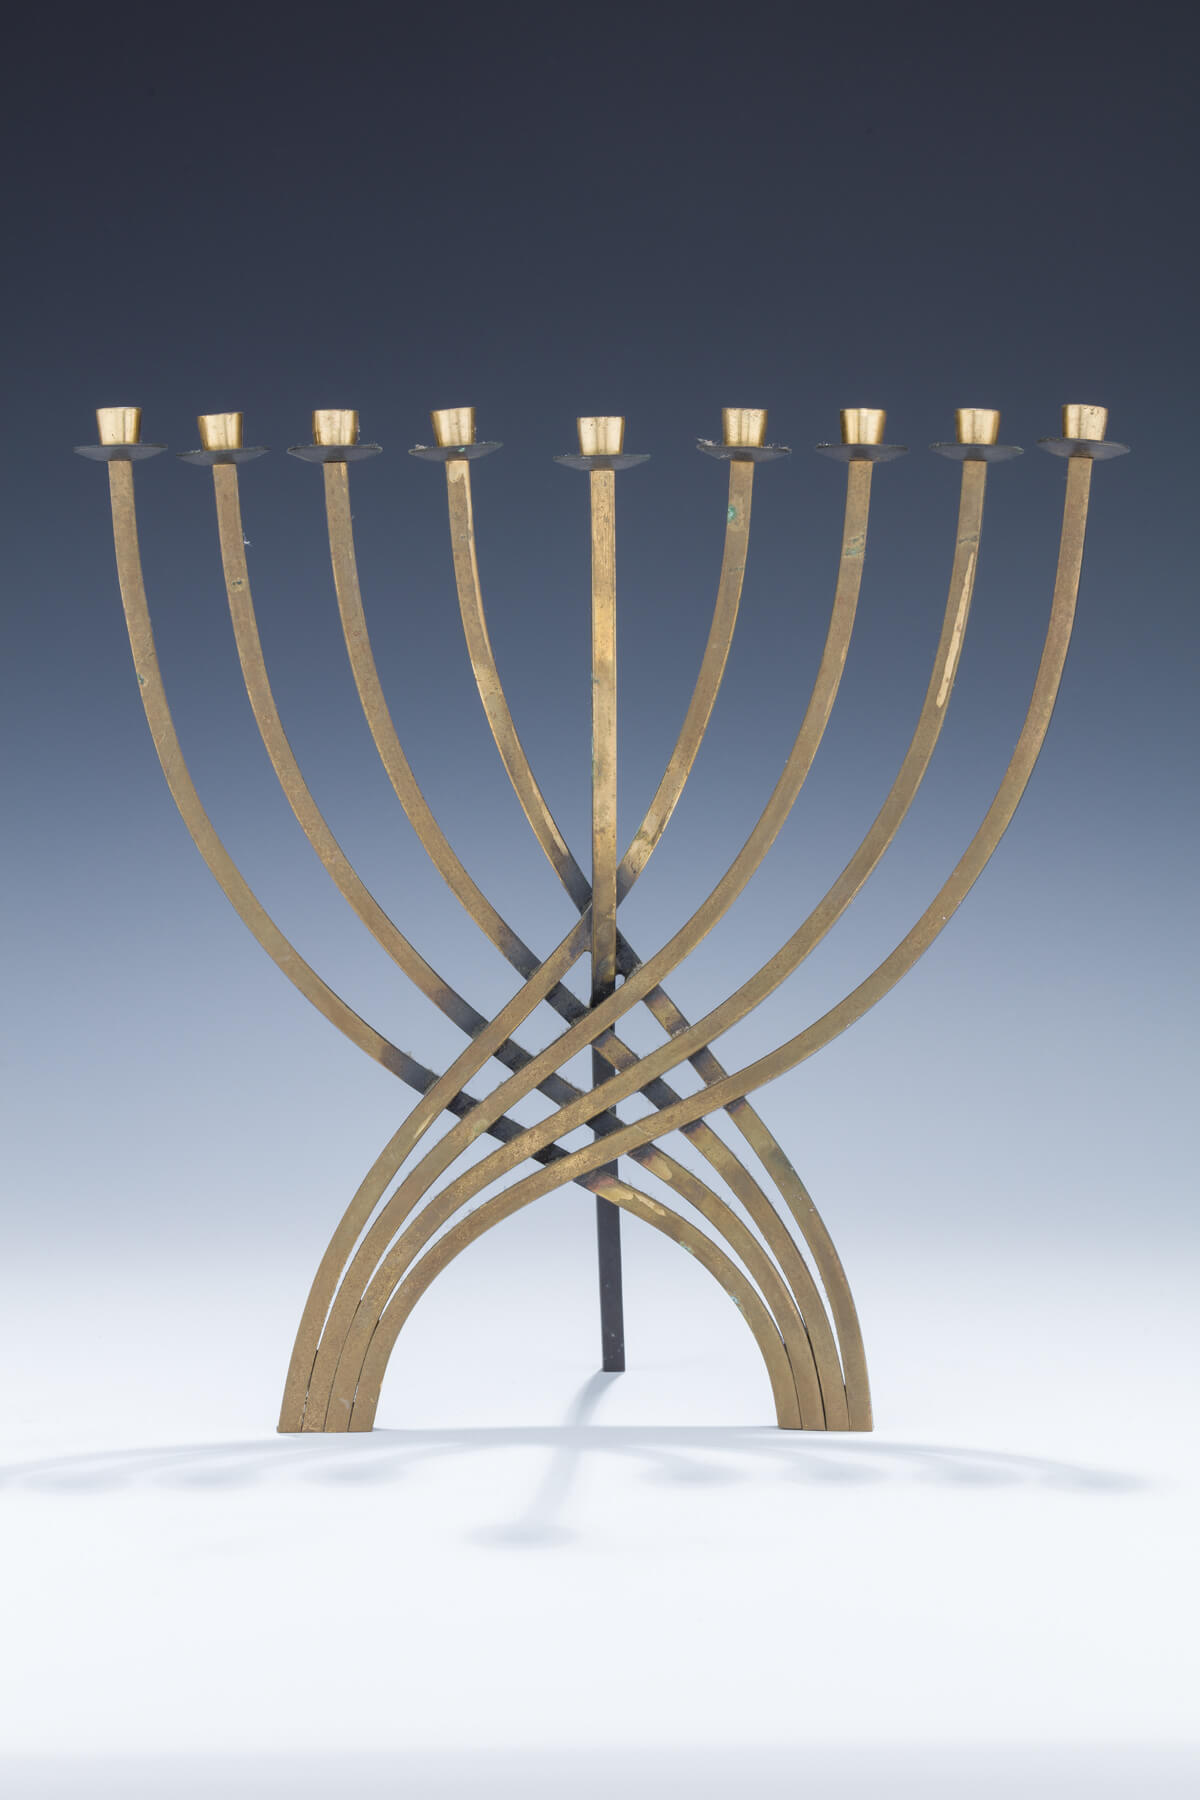 149. A Brass Chanukah Menorah by Ludwig Wolpert